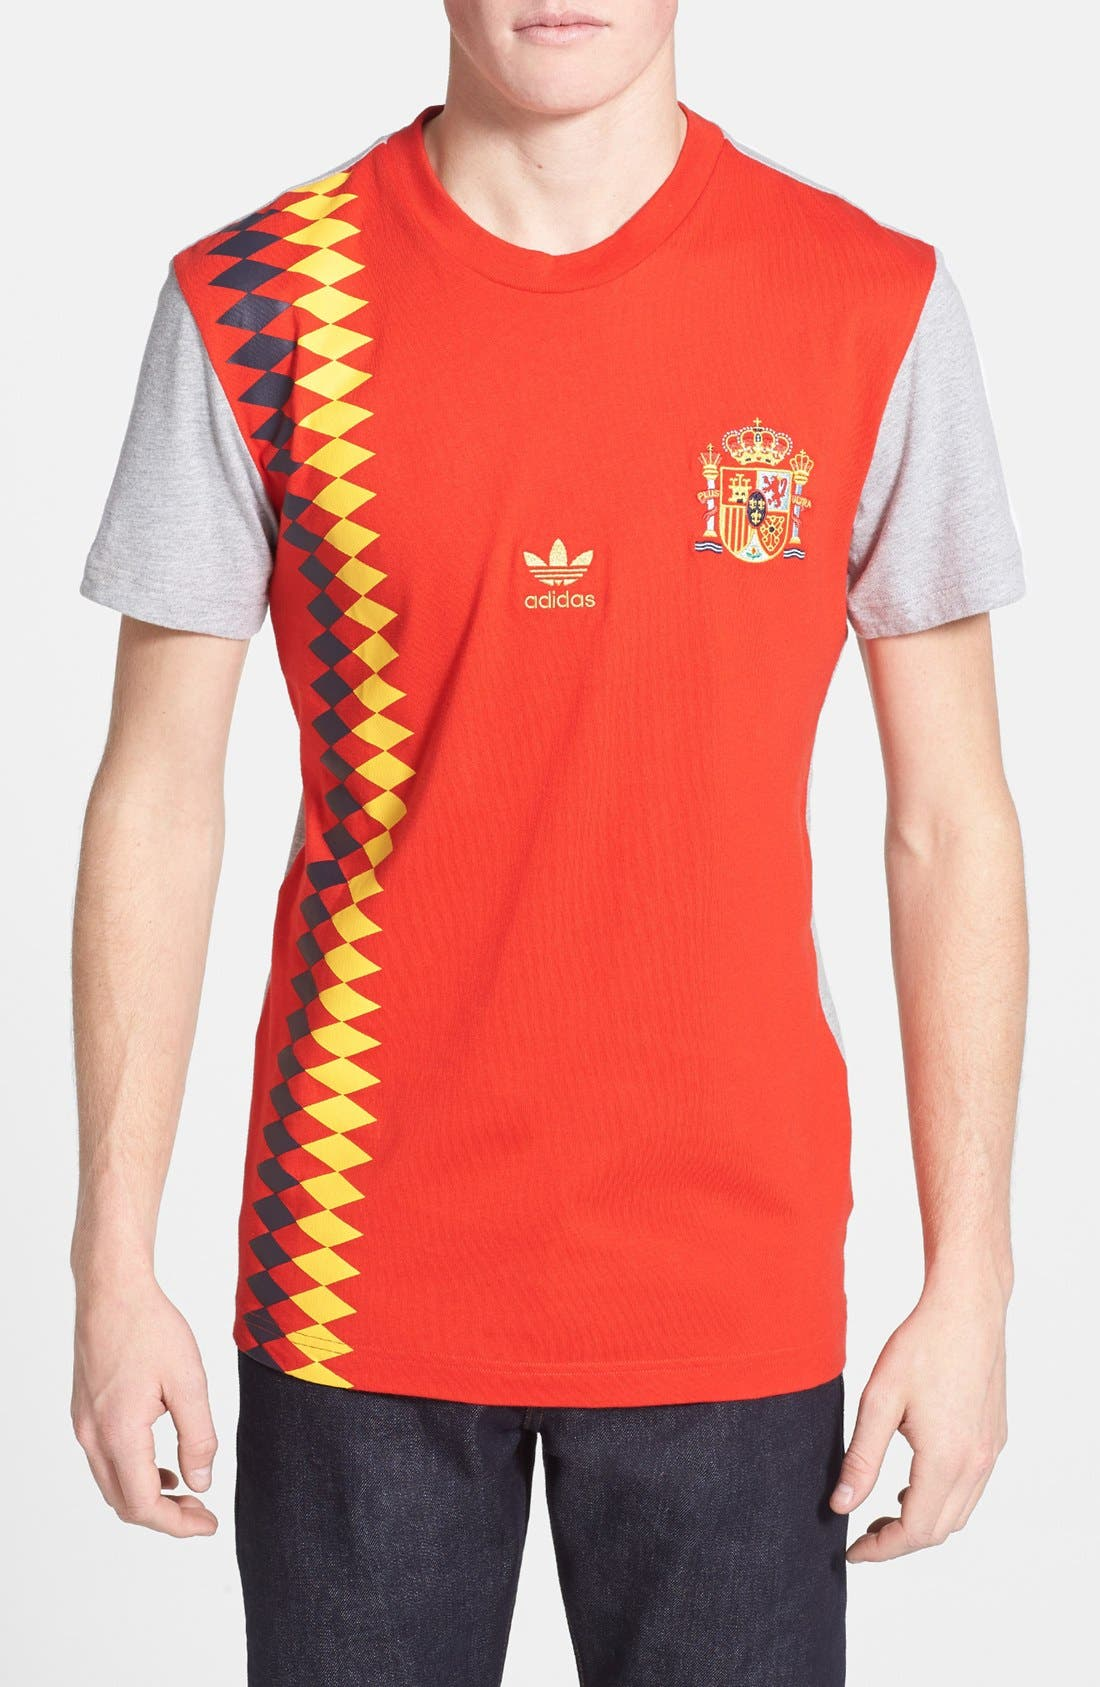 adidas originals spain t-shirt